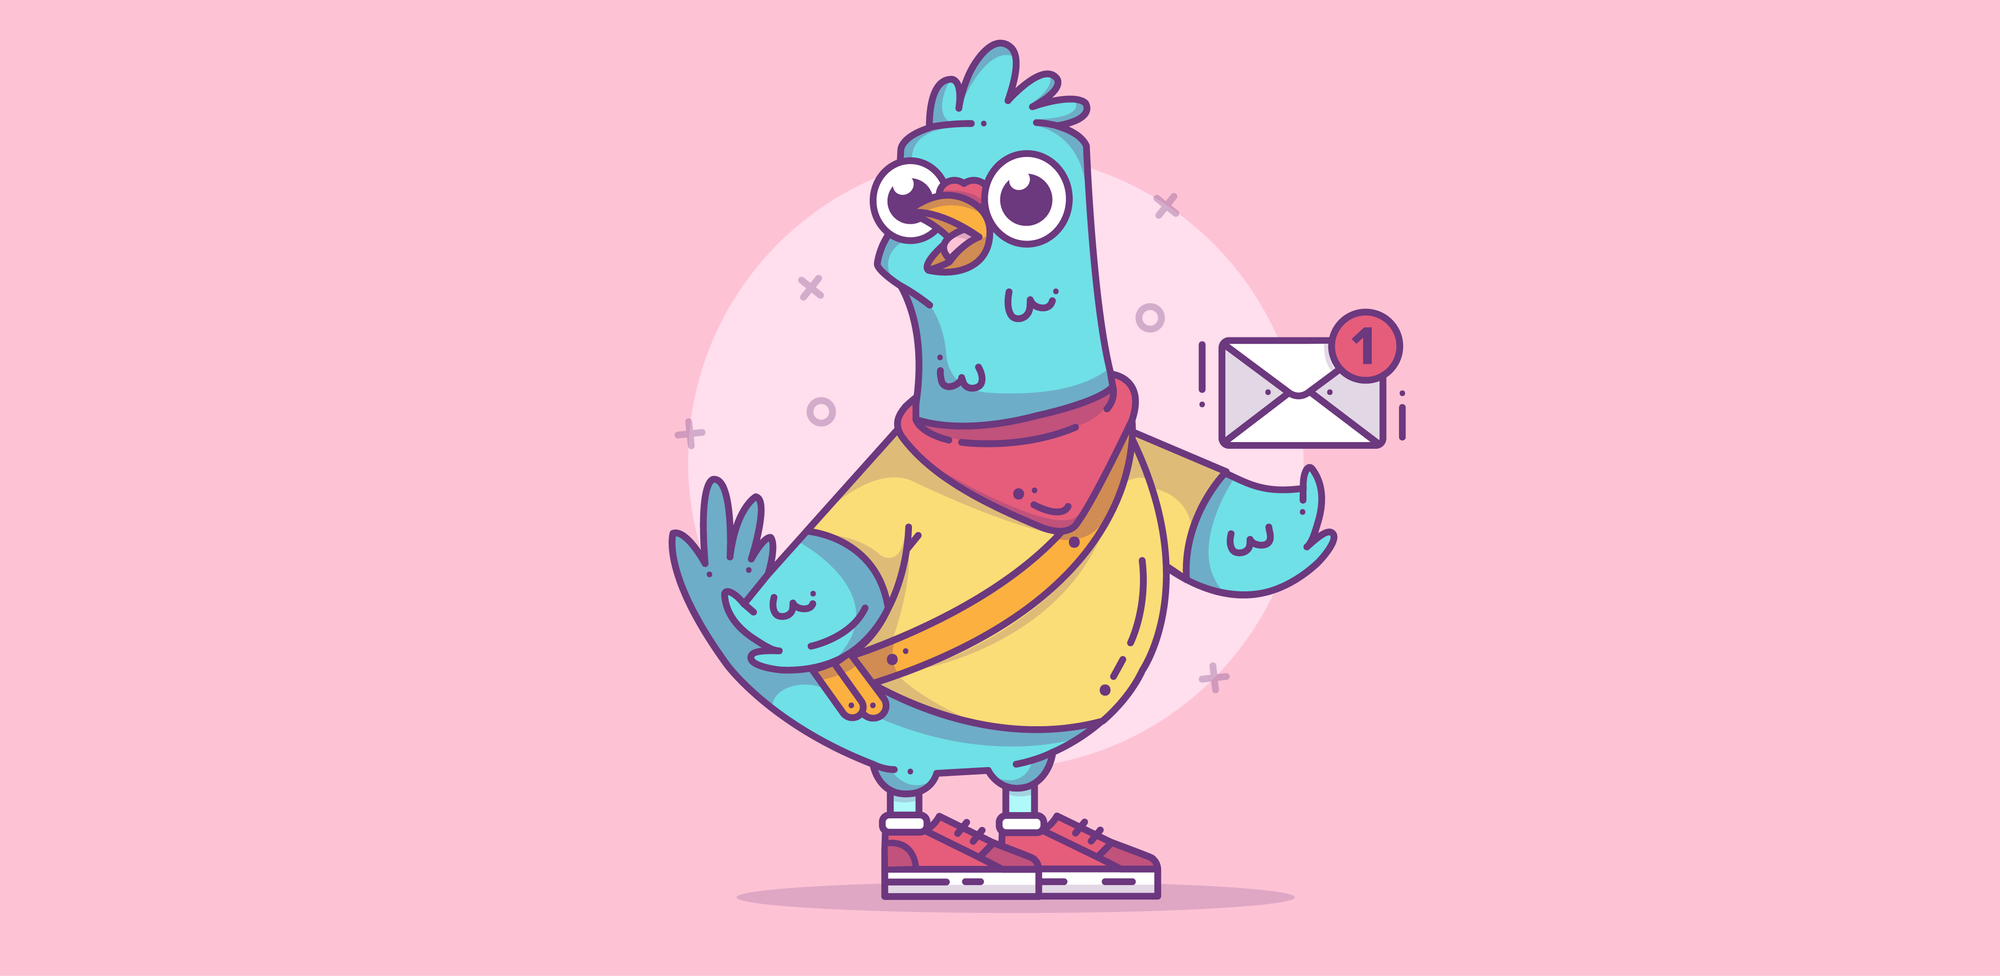 Albert_Pigeon-messenger-with-notification_Effective-communication_Inner-article-image-02